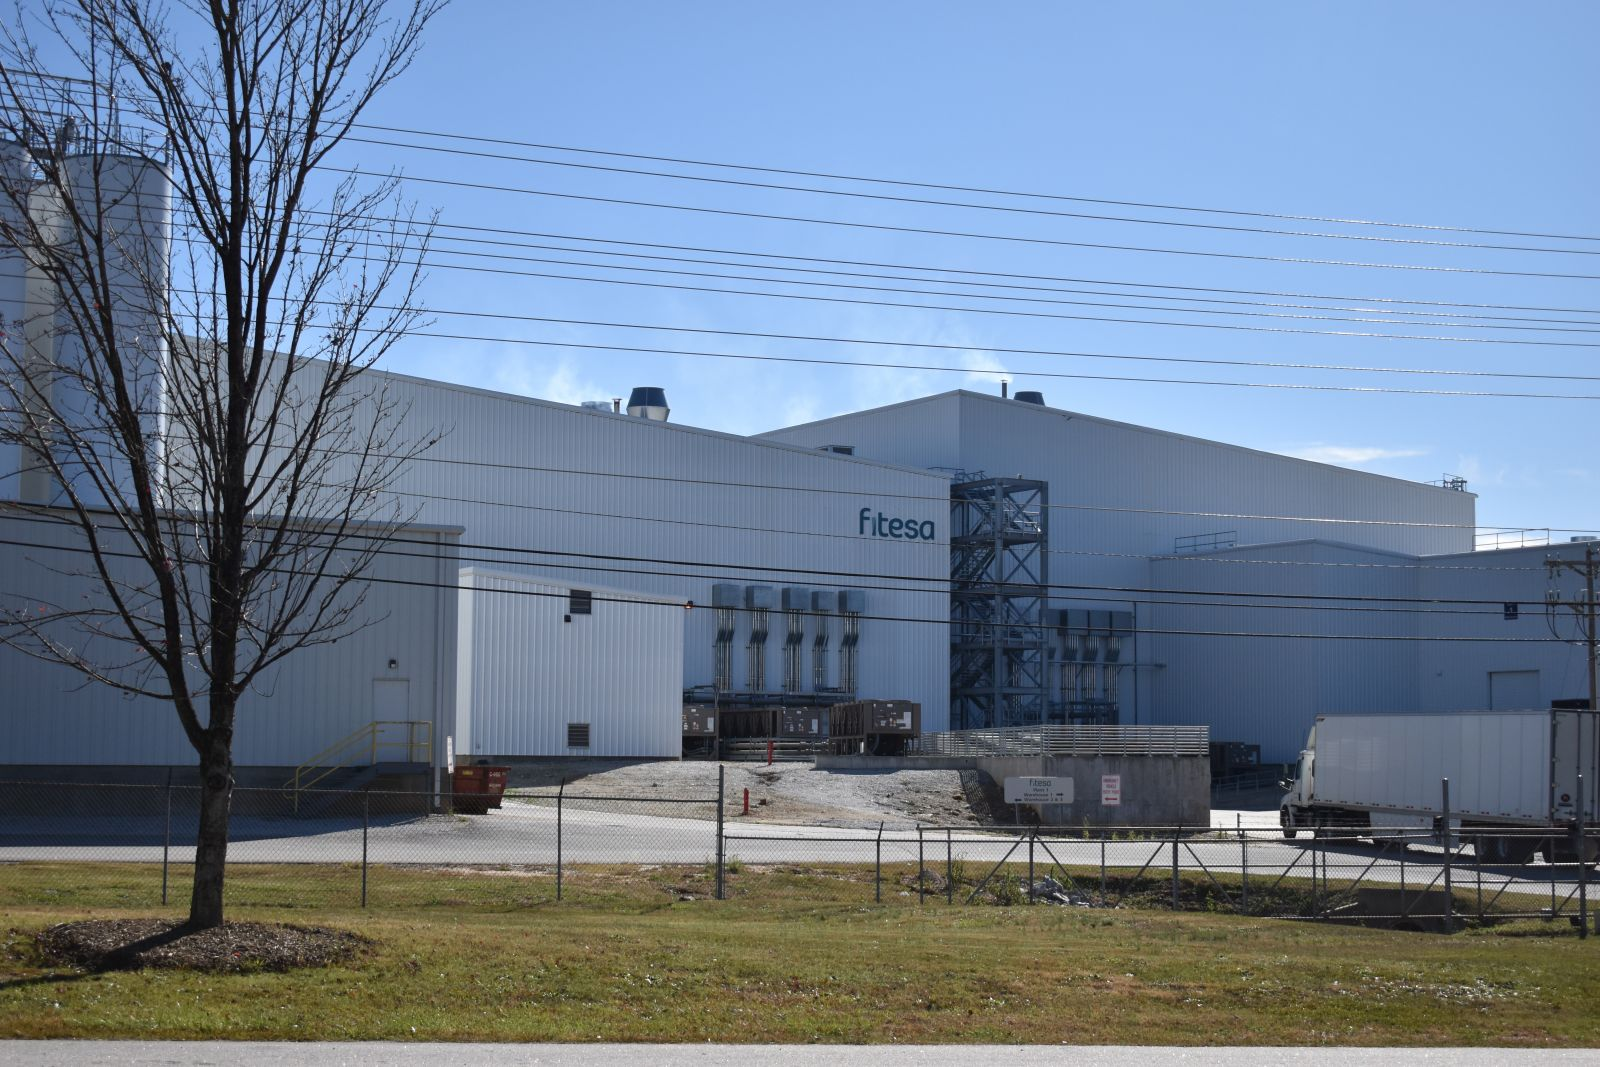 Fitesa's Simpsonville plant is one of several global locations set to expand under the company's current investment plan. (Photo/Molly Hulsey)